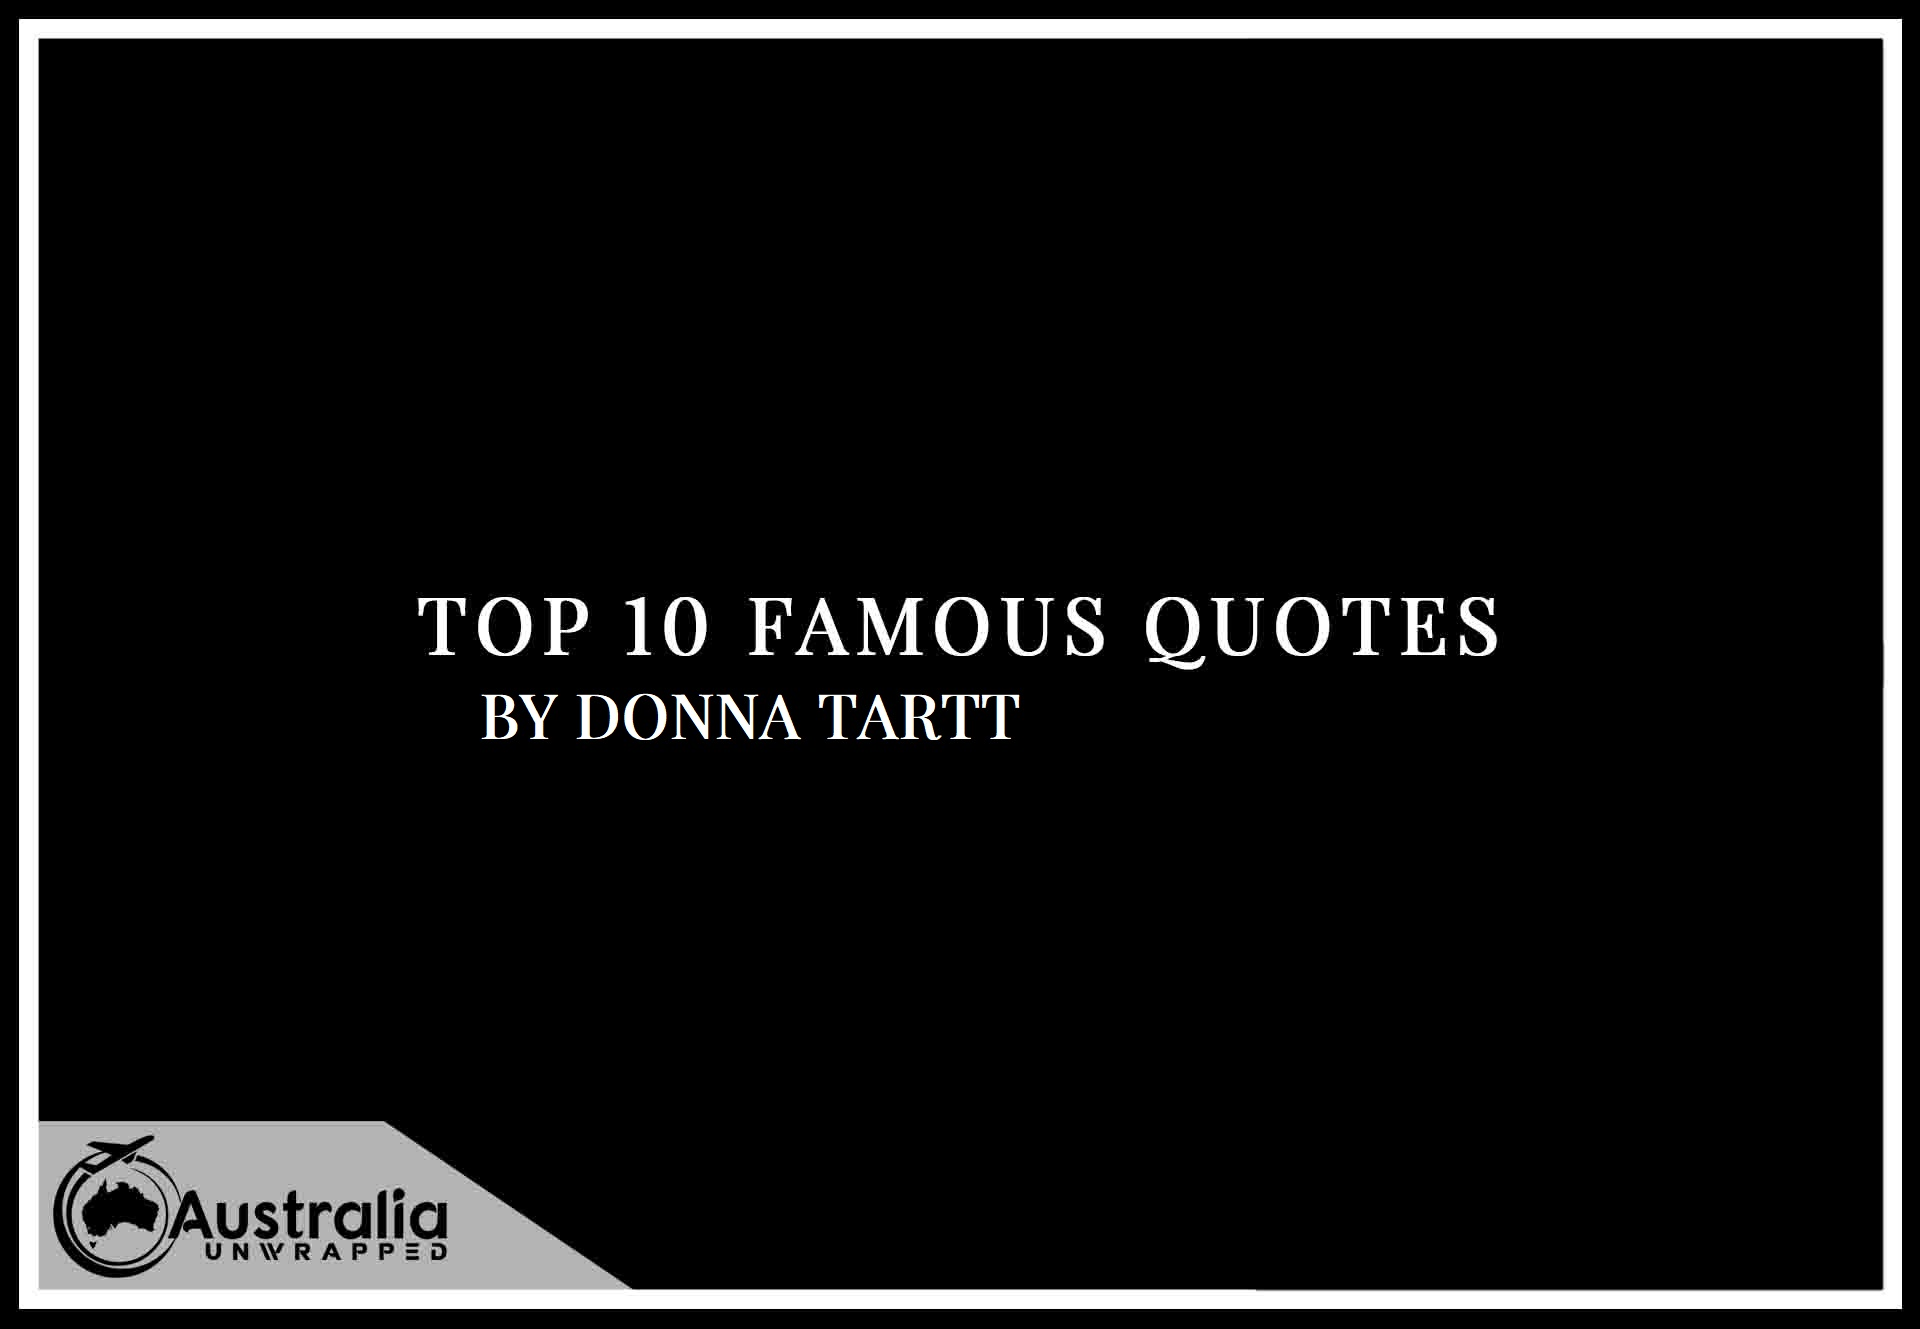 Top 10 Famous Quotes by Author Donna Tartt